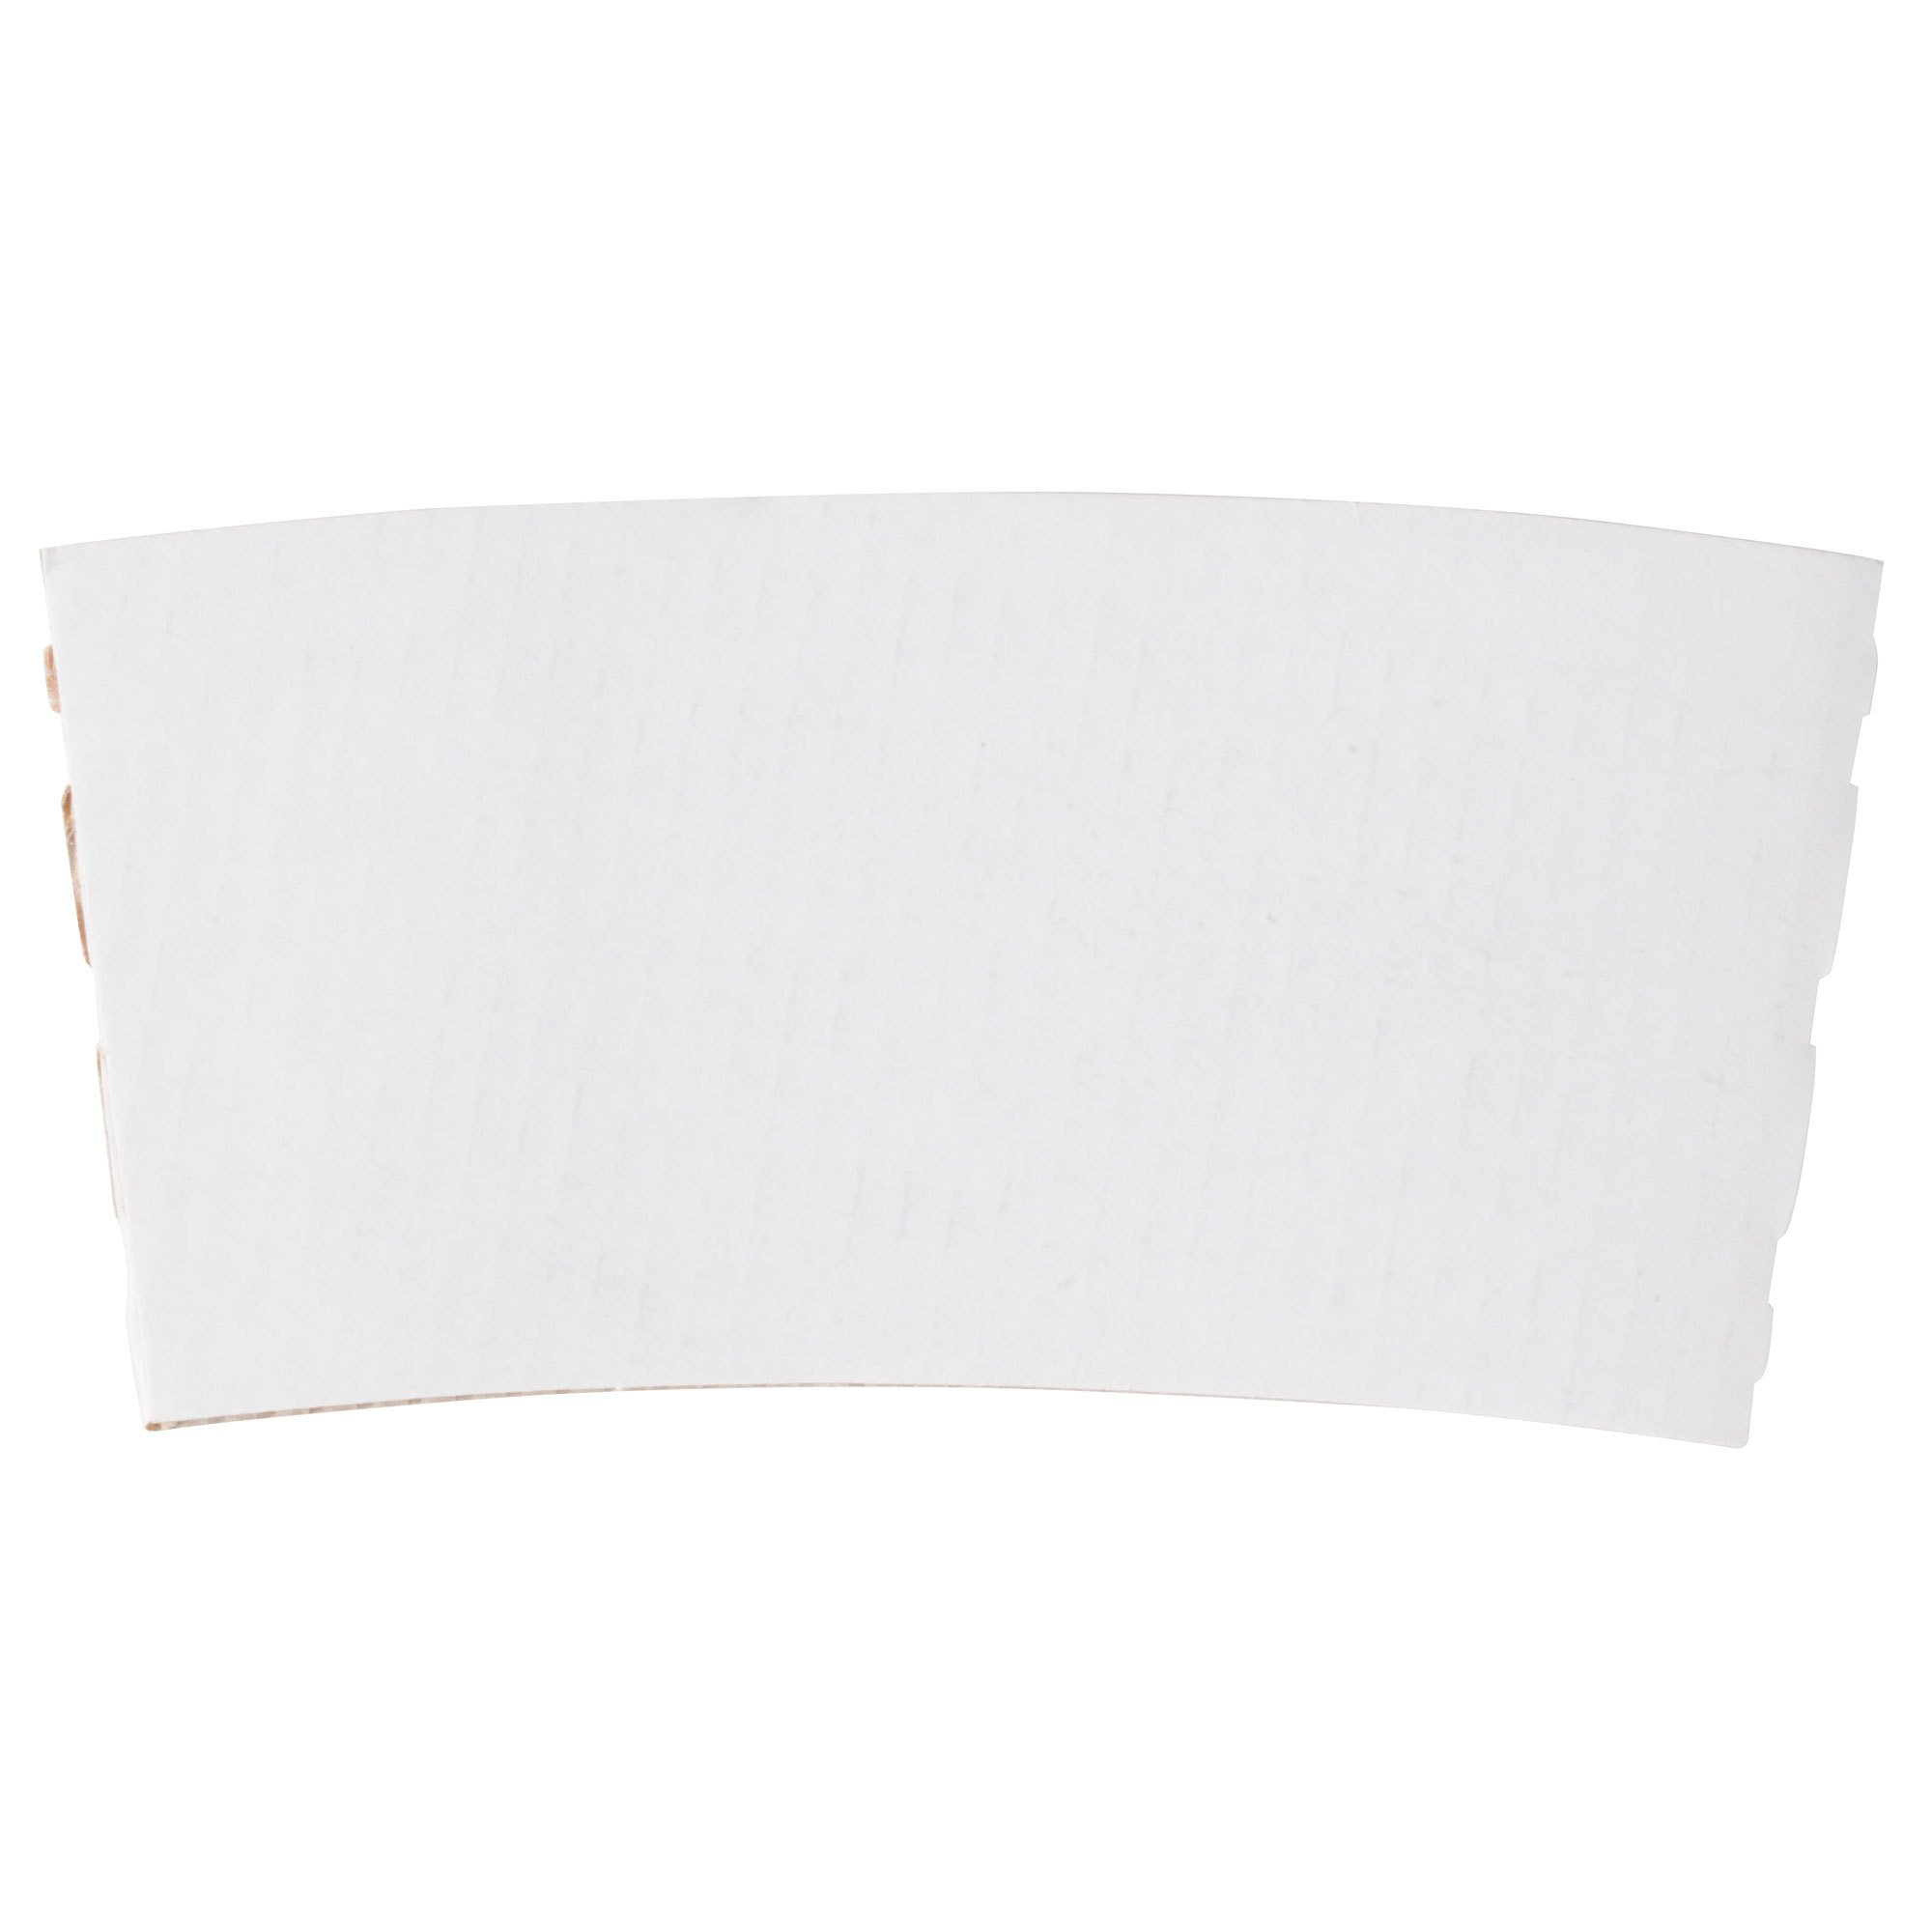 12-24 oz. White Customizable Coffee Cup Sleeve - 1500/Case